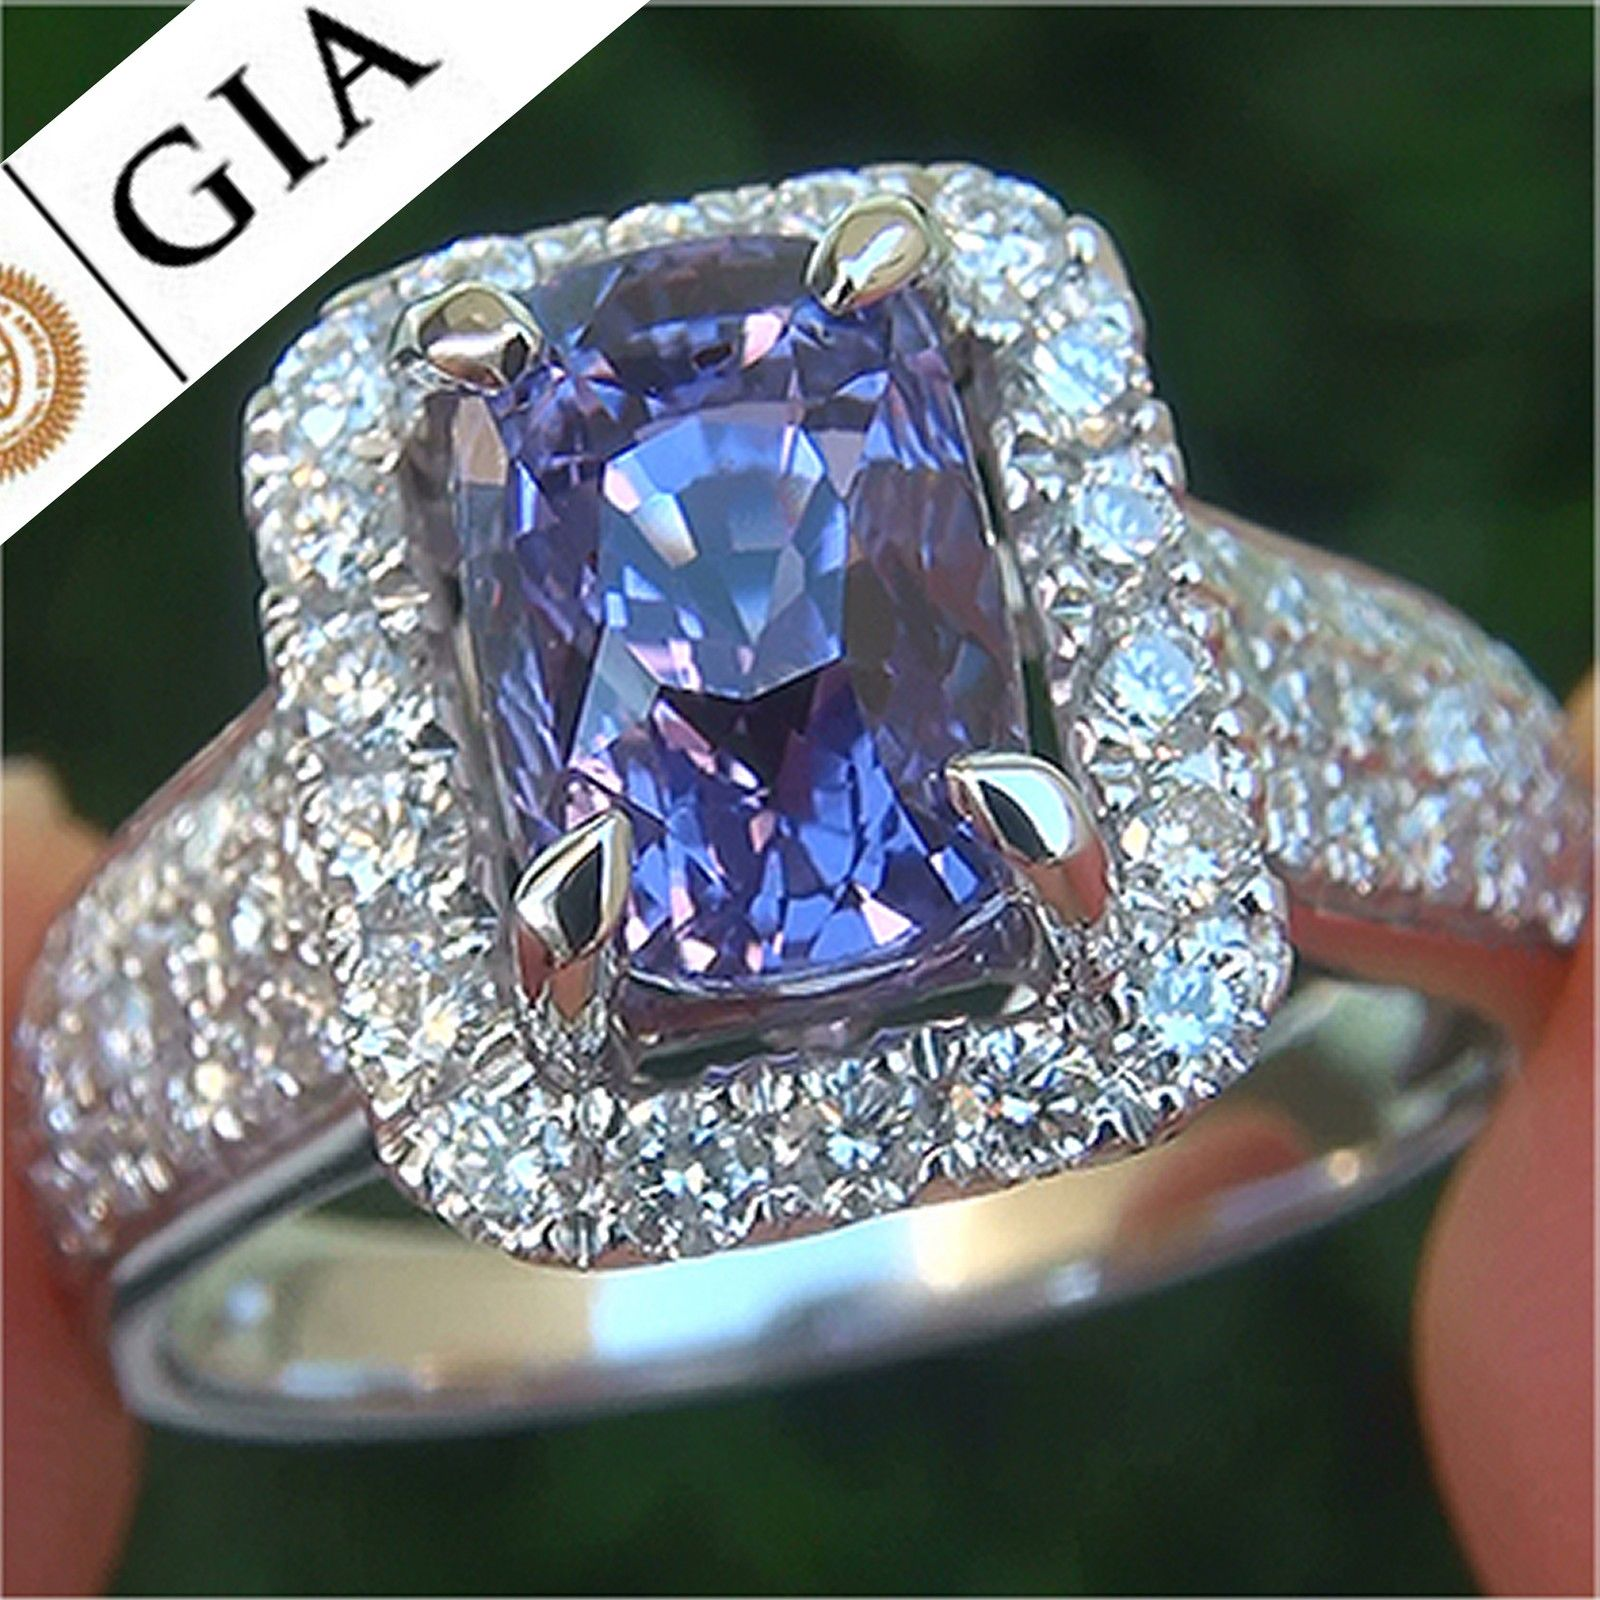 sapphire a diamond gorgeous gia ct unheated vvs color ring change natural gold rings gtrf sphene